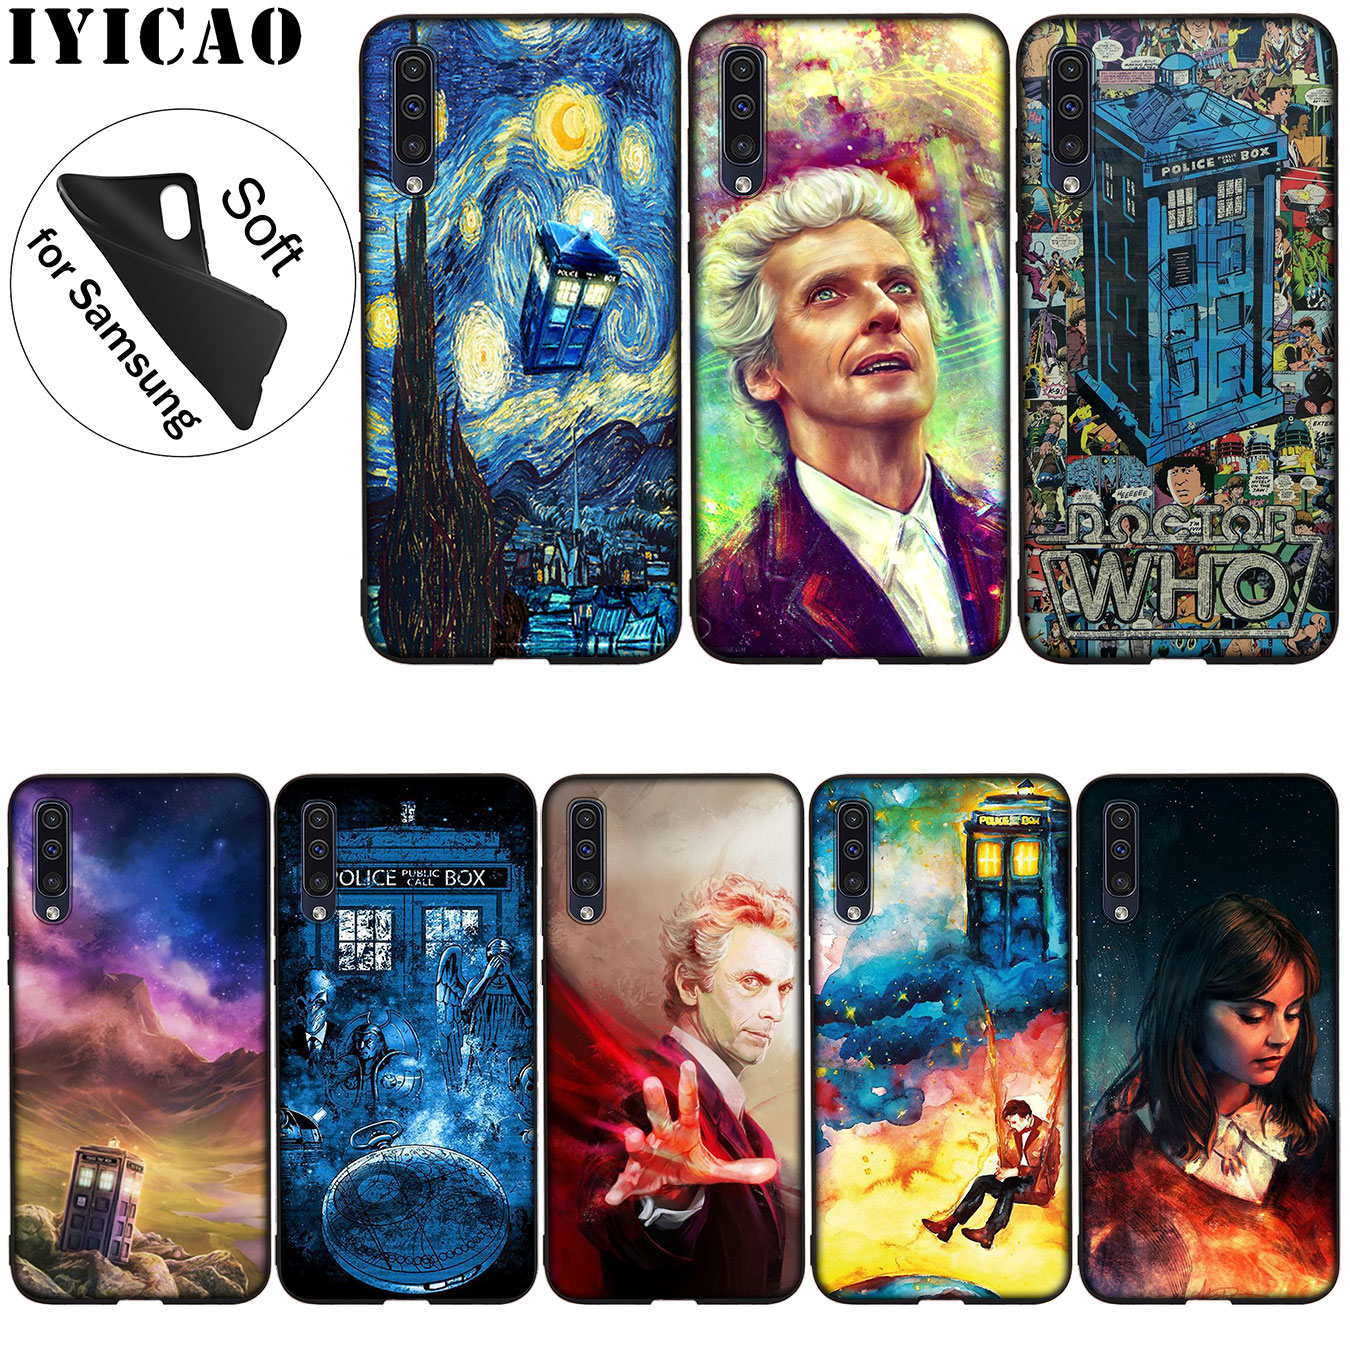 Phone Bags & Cases Lavaza Tardis Box Doctor Who Case For Samsung Galaxy A10 A30 A40 A50 A70 M10 M20 M30 Fitted Cases